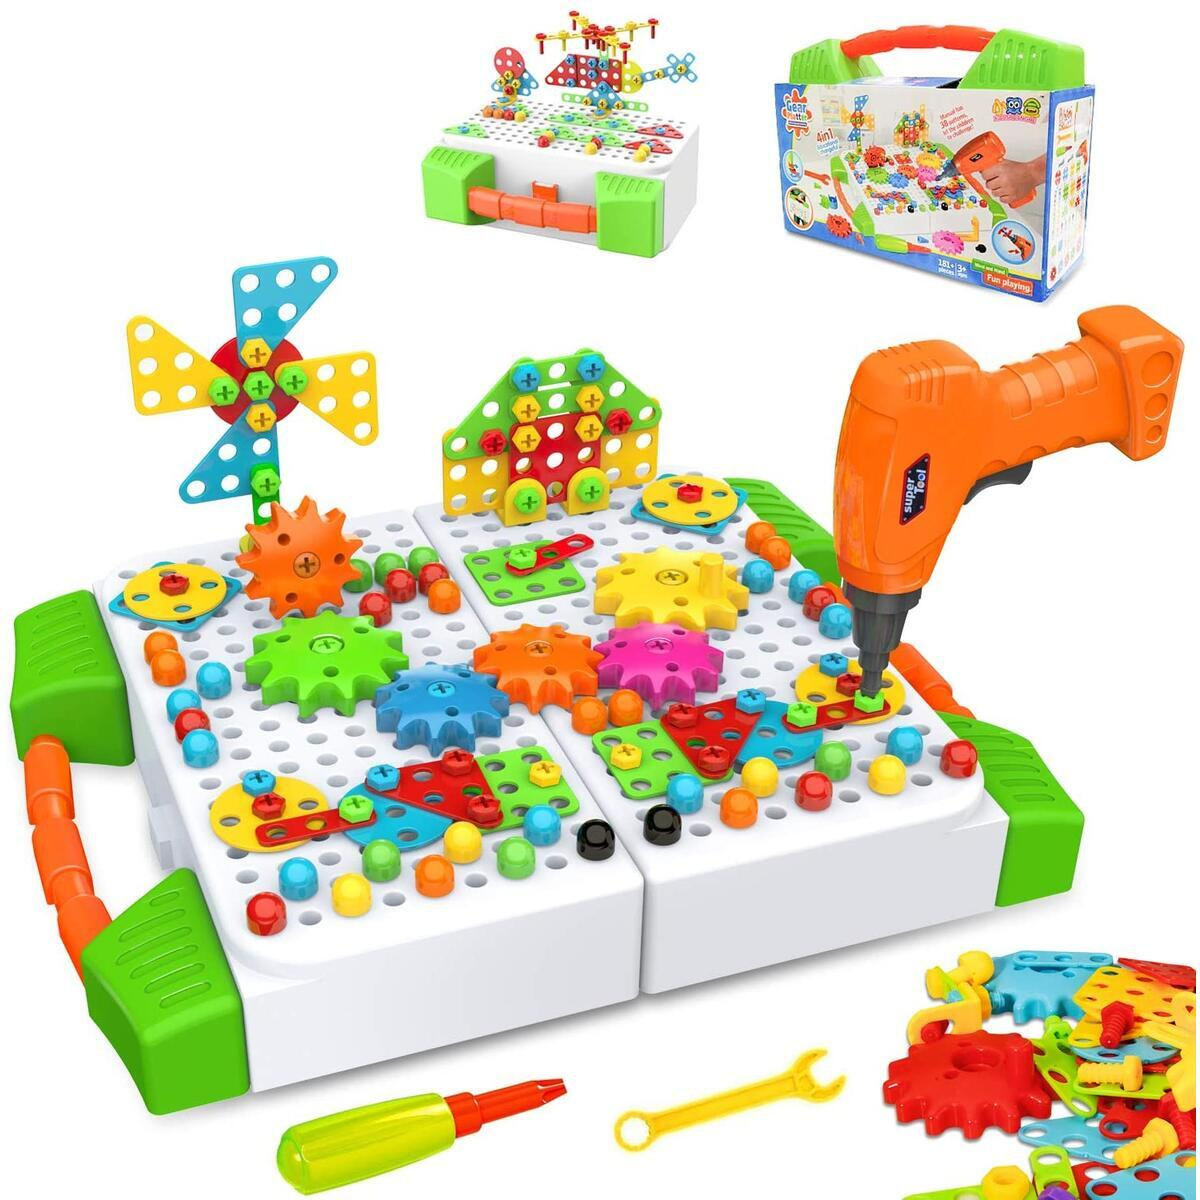 BeebeeRun Educational Construction Engineering Building Blocks Learning Set, 181 Pieces Creative Building Games for Preschool Boys & Girls, Electric Drill DIY Building Toys for Kids